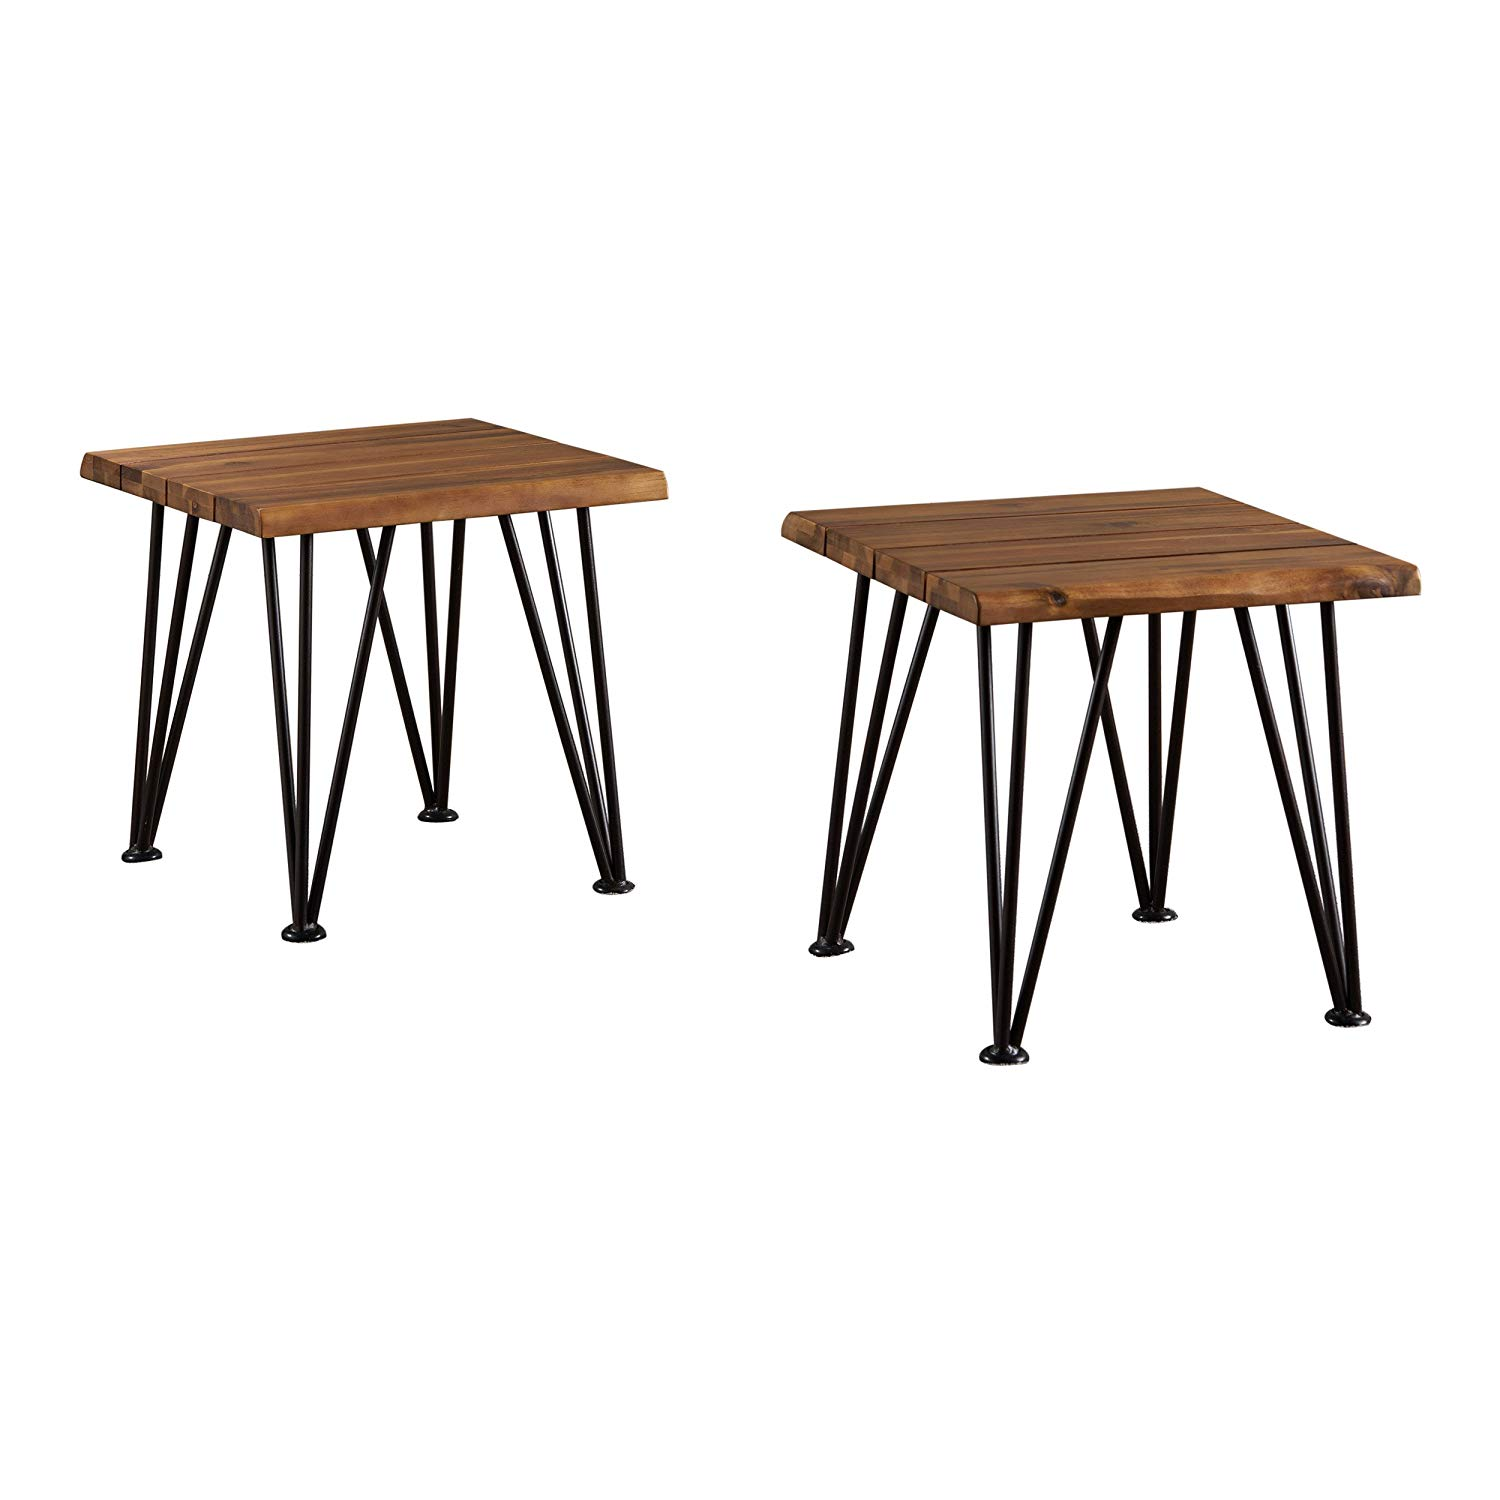 zahir outdoor industrial iron teak finished acacia wood accent table qty garden black bedside pier dining room chairs hand painted drawers cute side tables furniture patio stump